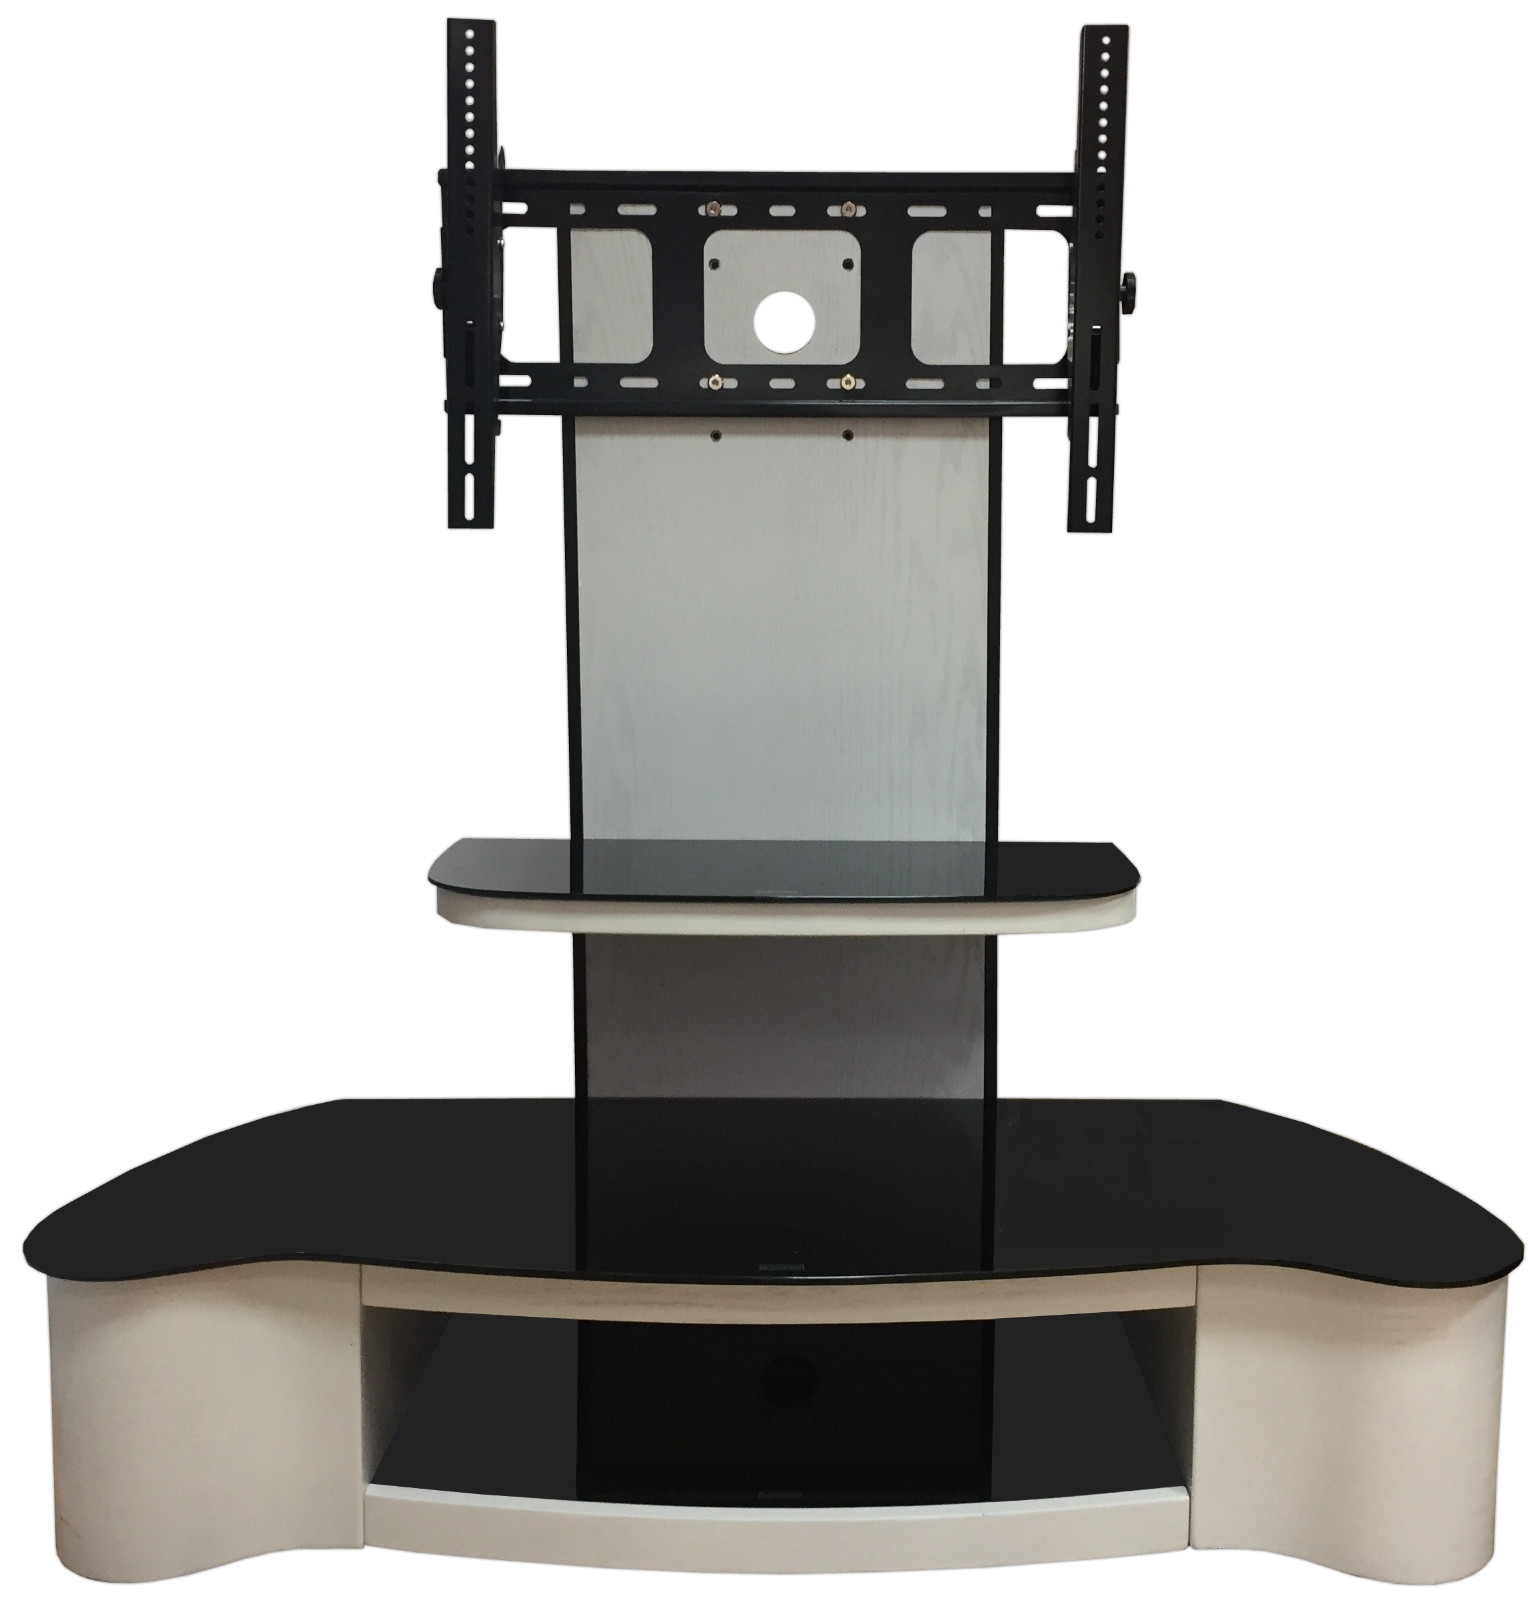 "White Tv Stand Wooden Tv Unit Tv Cabinet With Bracket For 32"" 65 With Regard To Tv Stands With Bracket (View 15 of 15)"